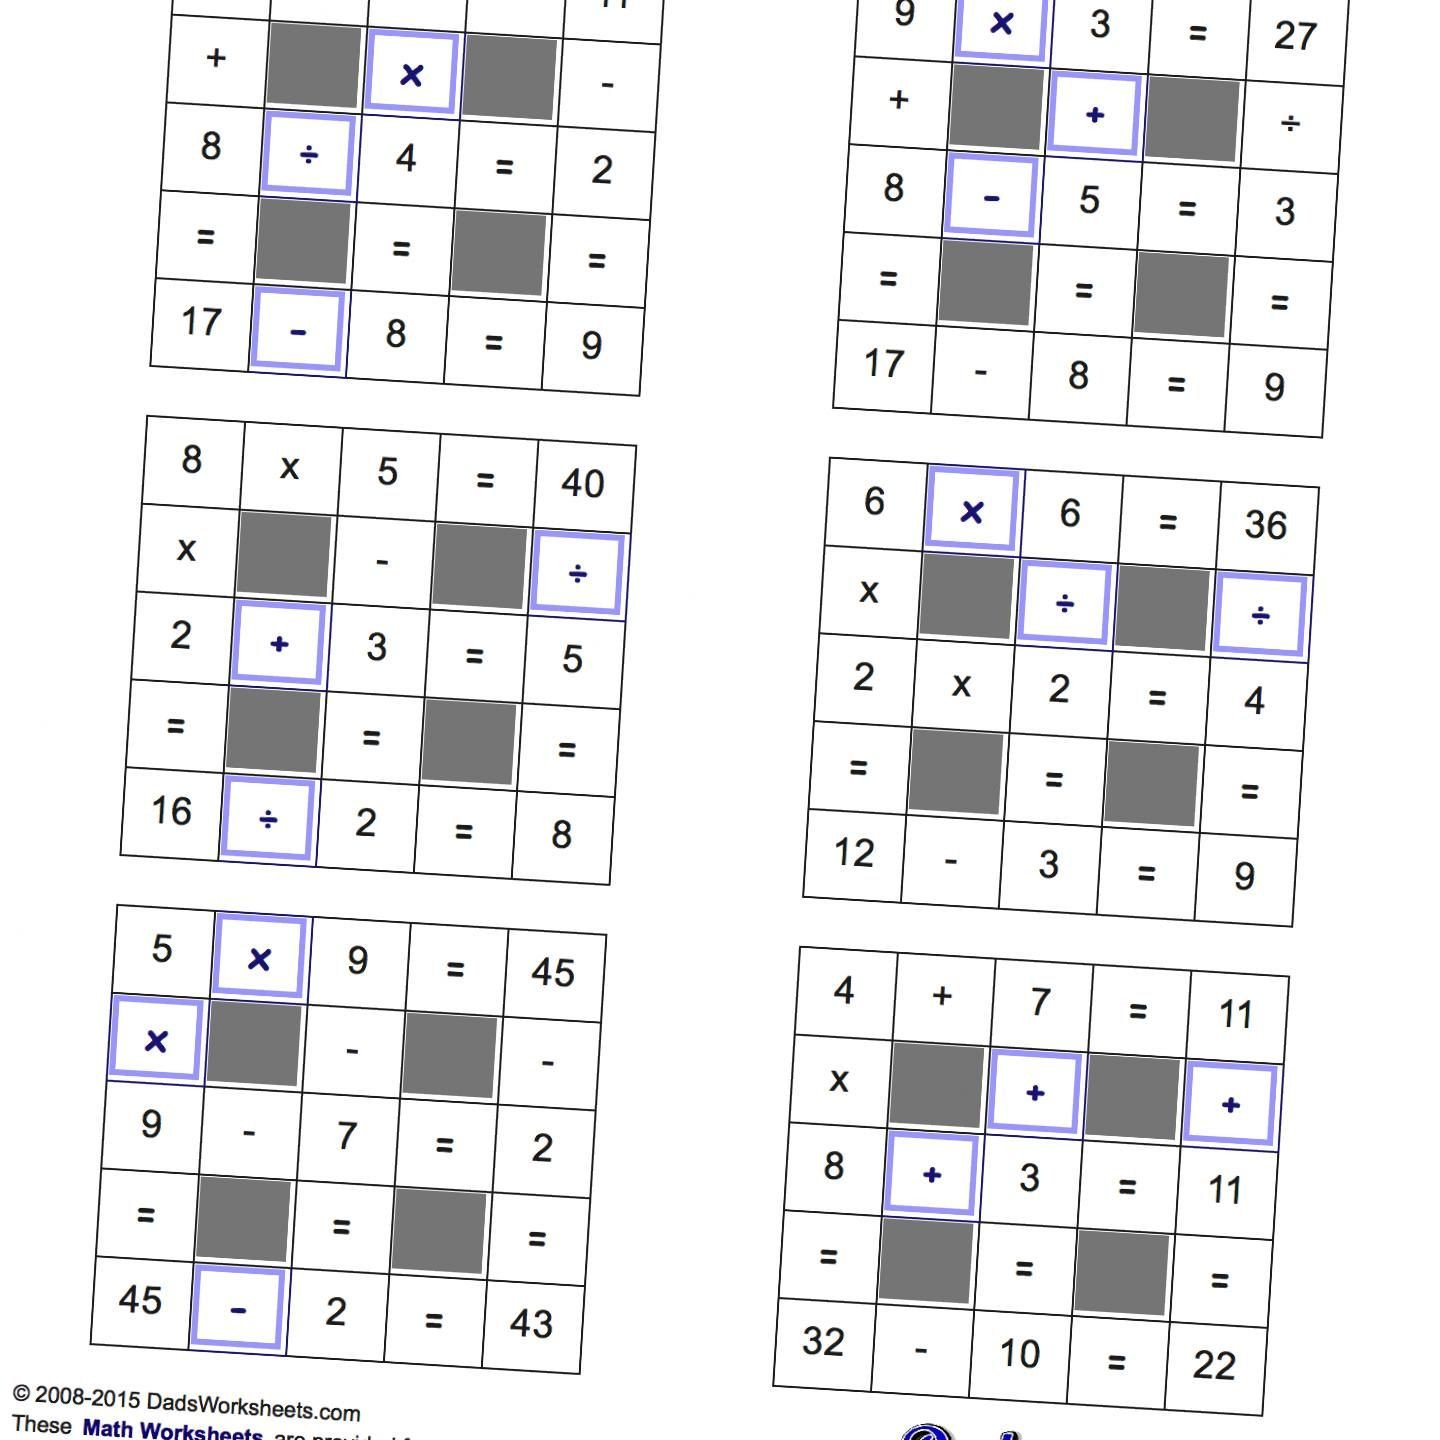 Number Grid Puzzles Worksheets Maths Grid Puzzles